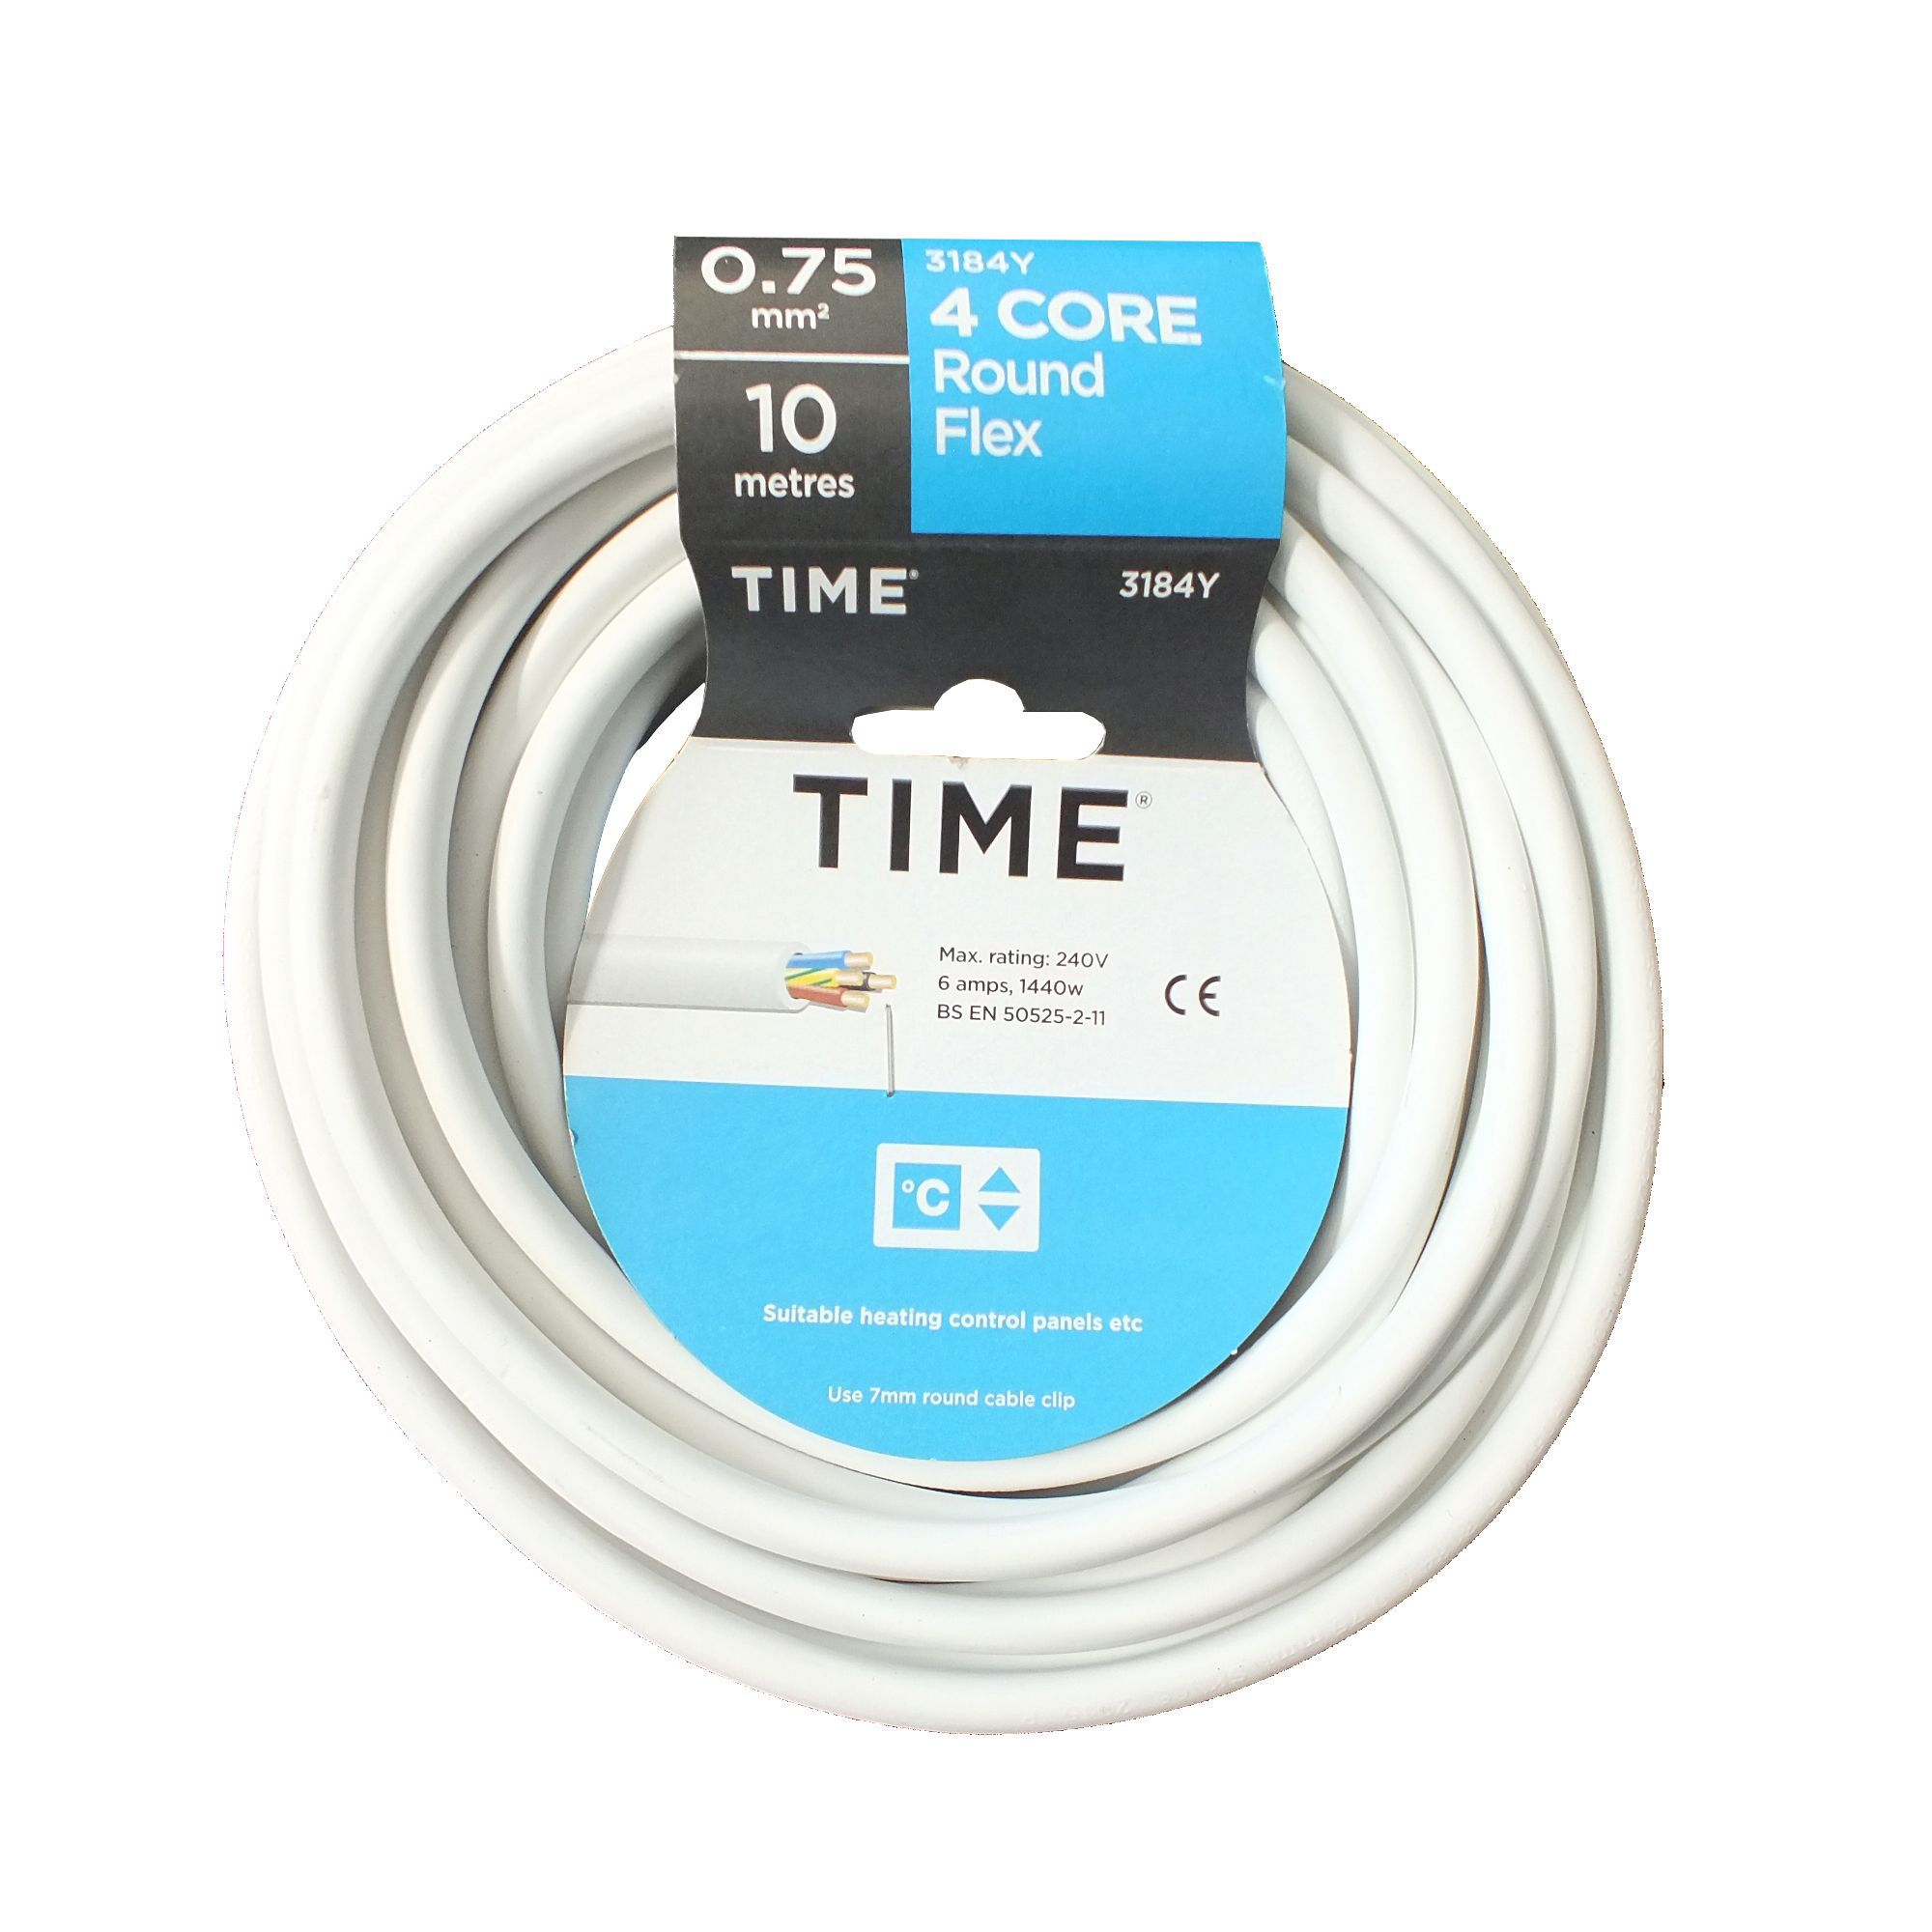 Time 4 core Round flexible cable 0.75mm² 3184Y White 10 m ...